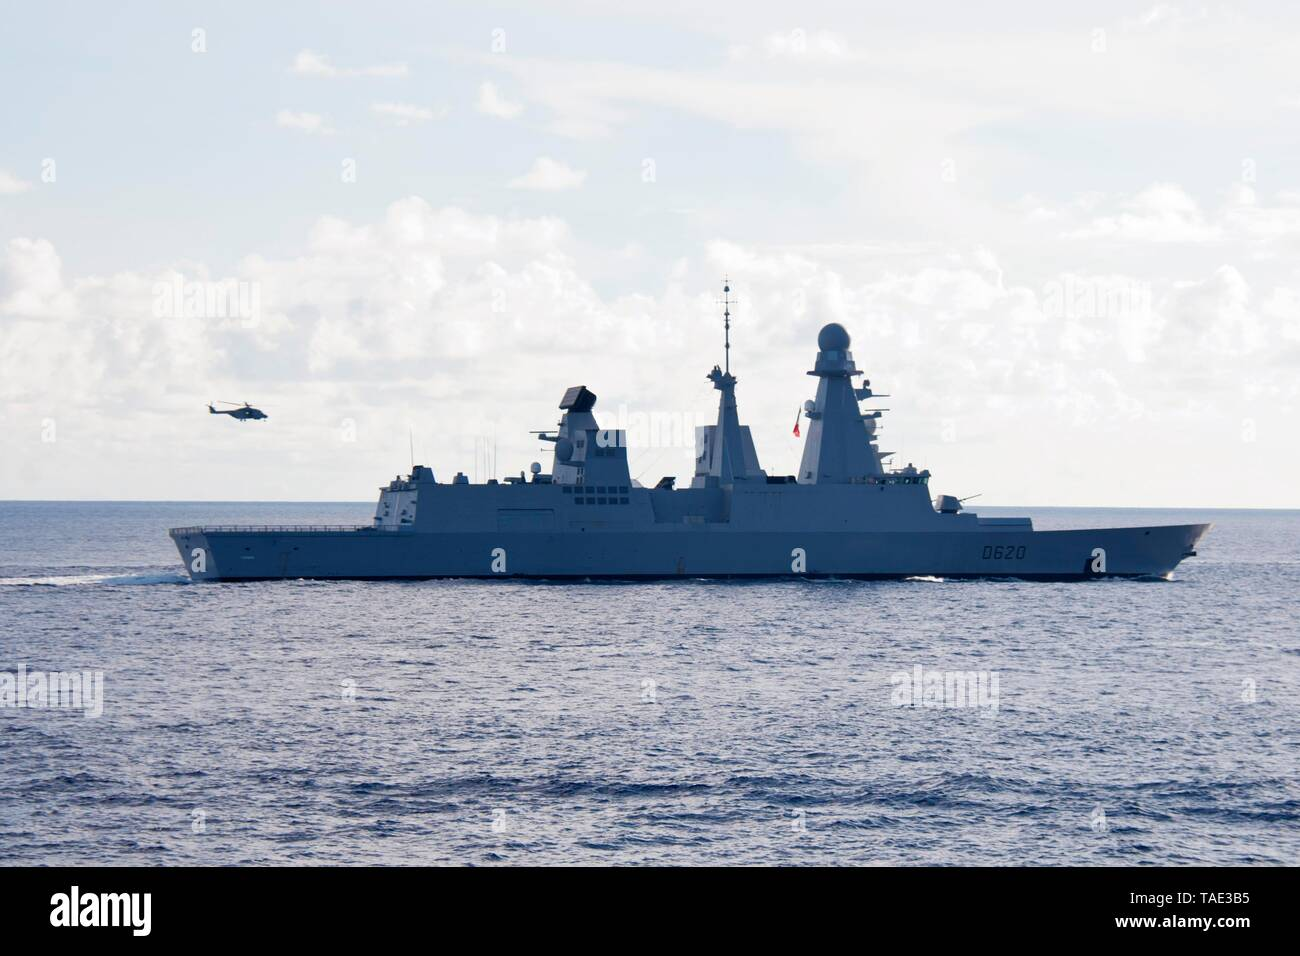 190521-N-VA840-0040 INDIAN OCEAN (May 21, 2019) The French frigate FS Forbin (D620) sails alongside the Arleigh Burke-class guided-missile destroyer USS William P. Lawrence (DDG 110) during a multi-nation group sail in the Indian Ocean. William P. Lawrence is deployed to the U.S. 7th Fleet area of operations in support of security and stability in the Indo-Pacific region. (U.S. Navy photo by Mass Communication Specialist 1st Class Leonard Adams) - Stock Image